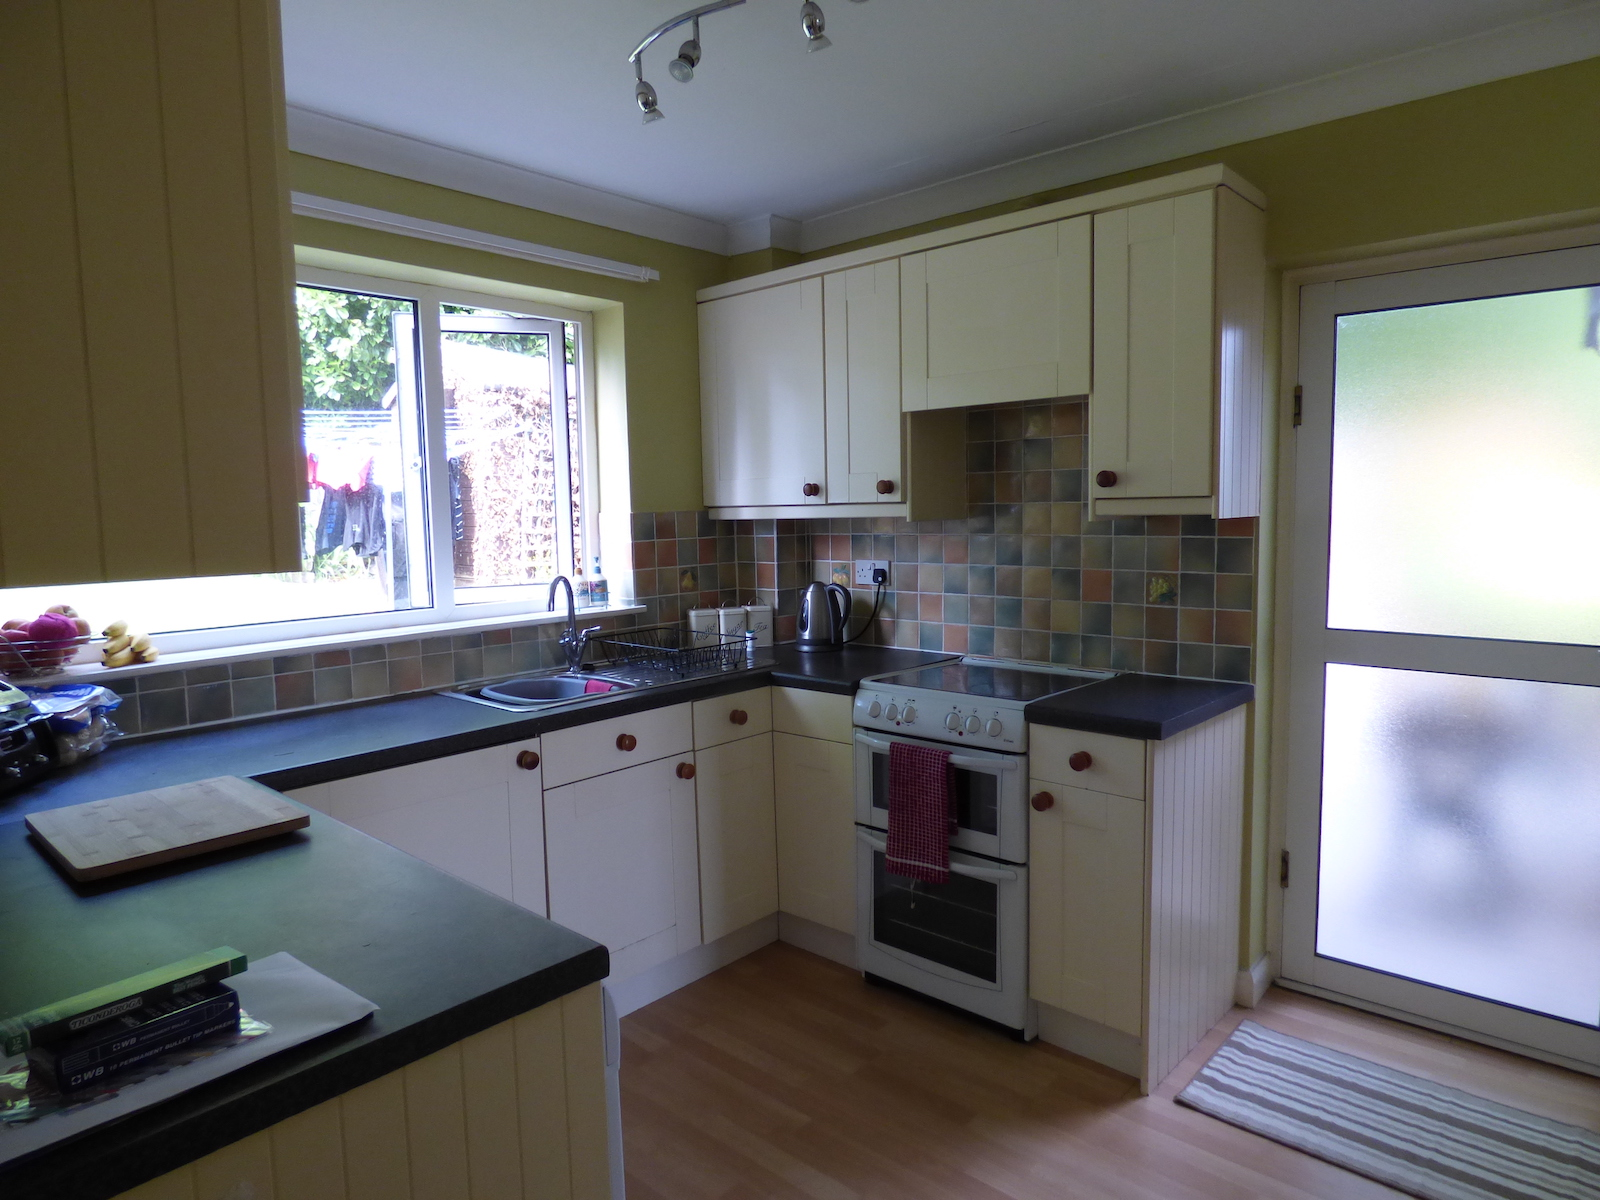 The Existing Kitchen